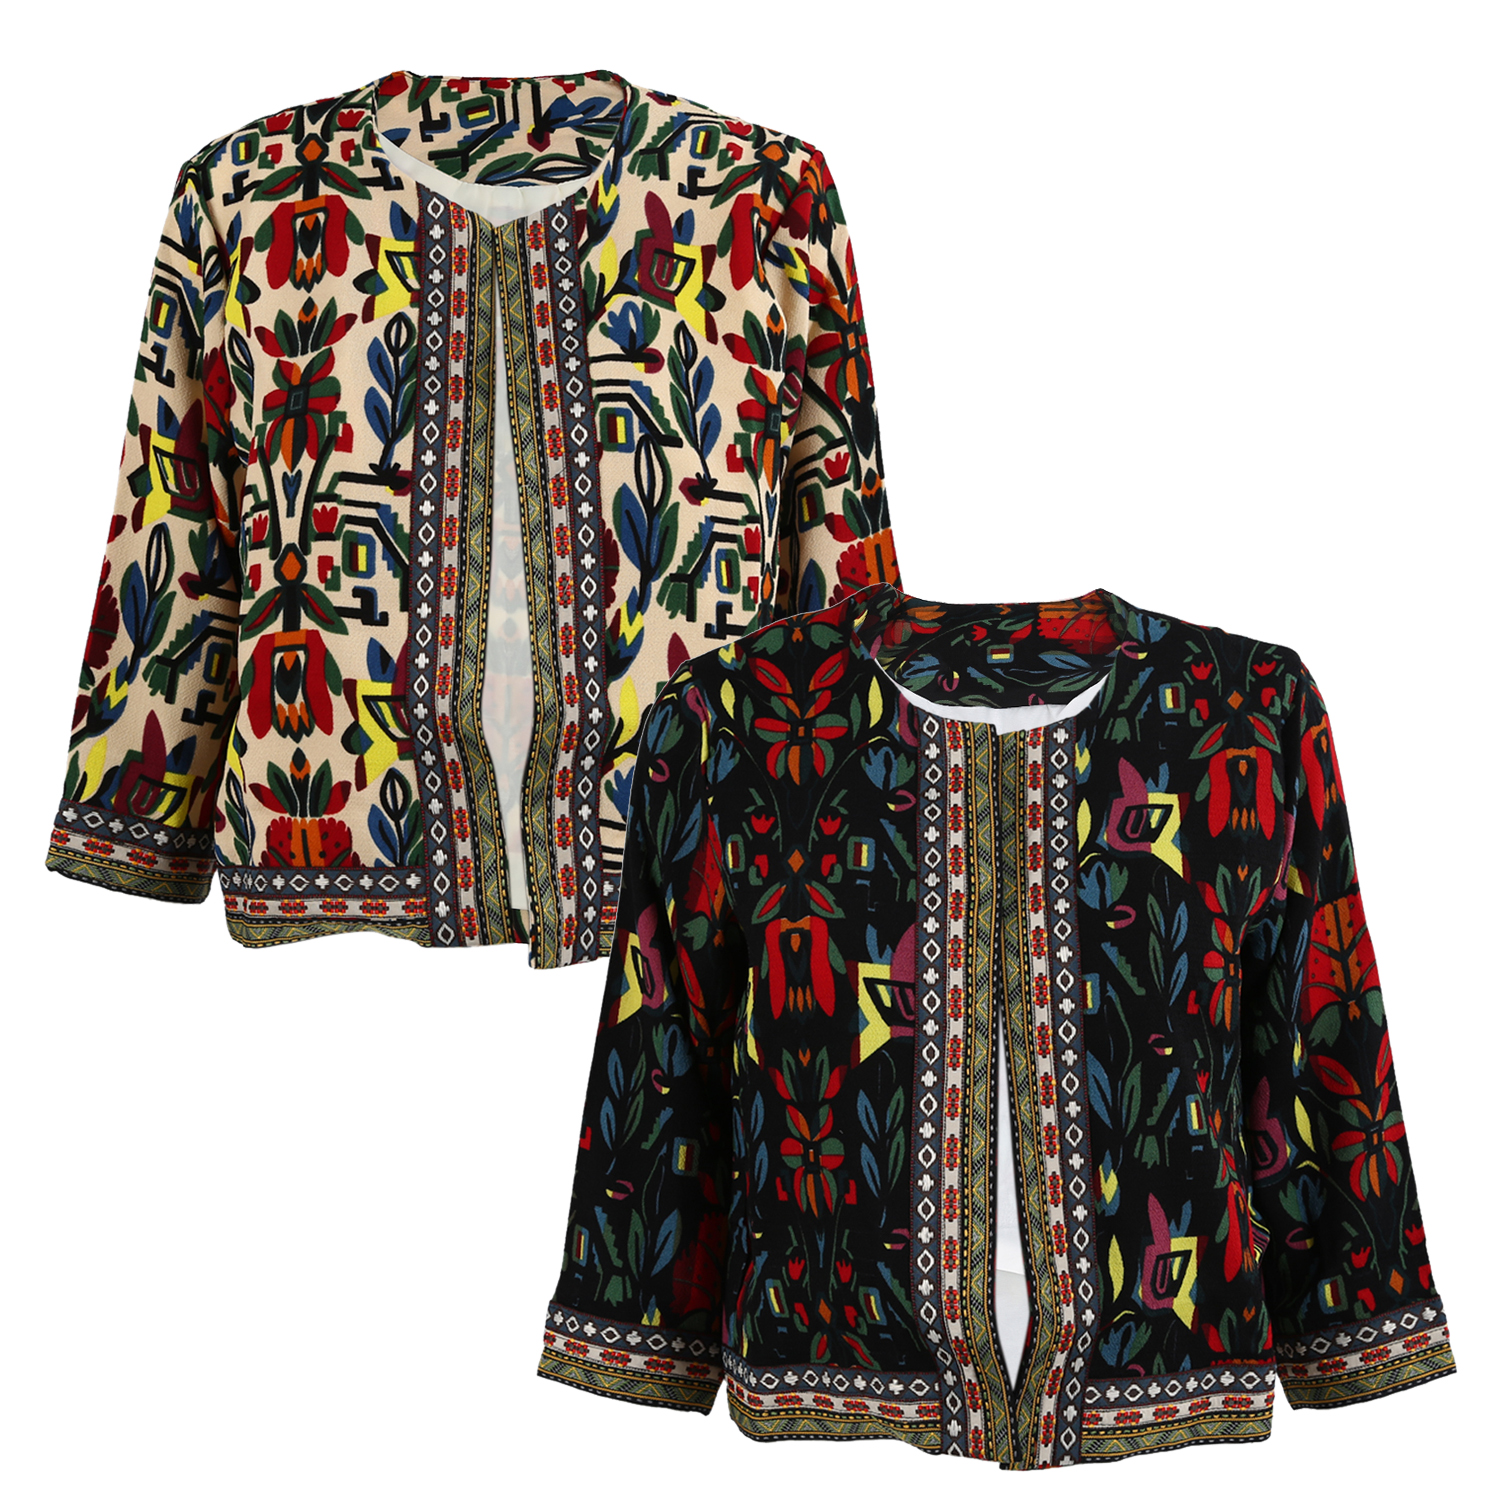 S vintage women lady ethnic floral print embroidered